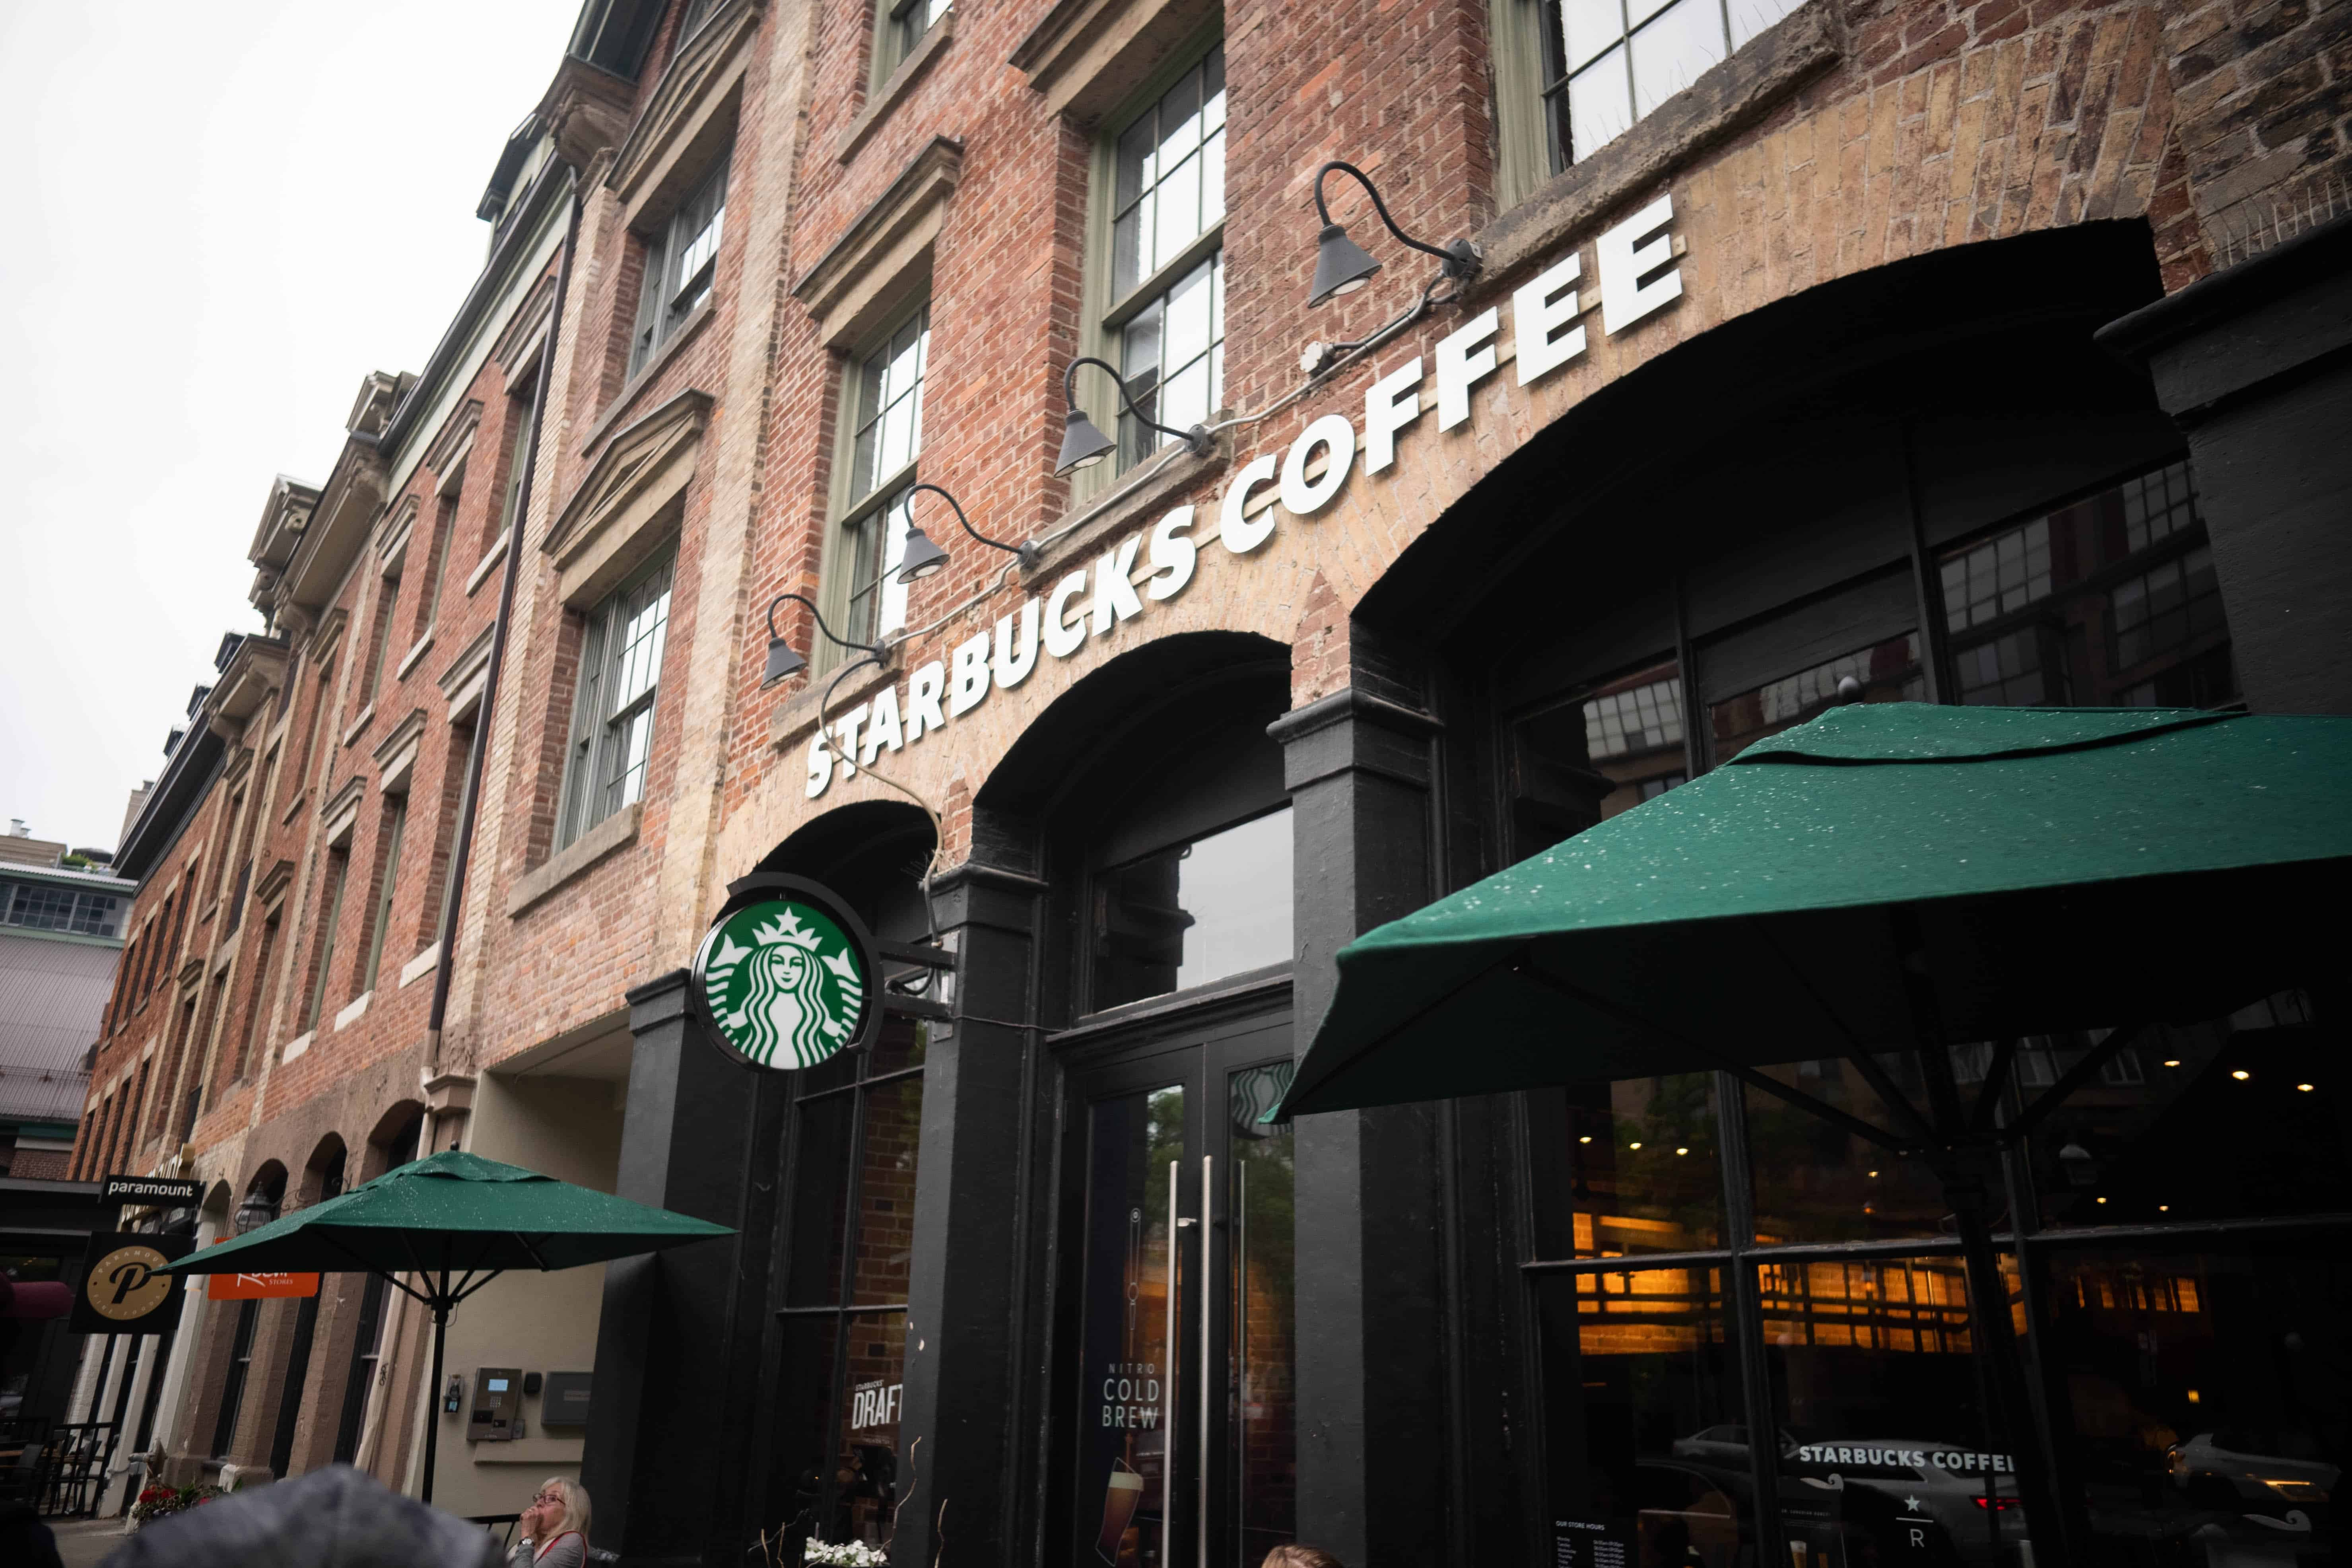 starbucks cafe on the street, coffee facts